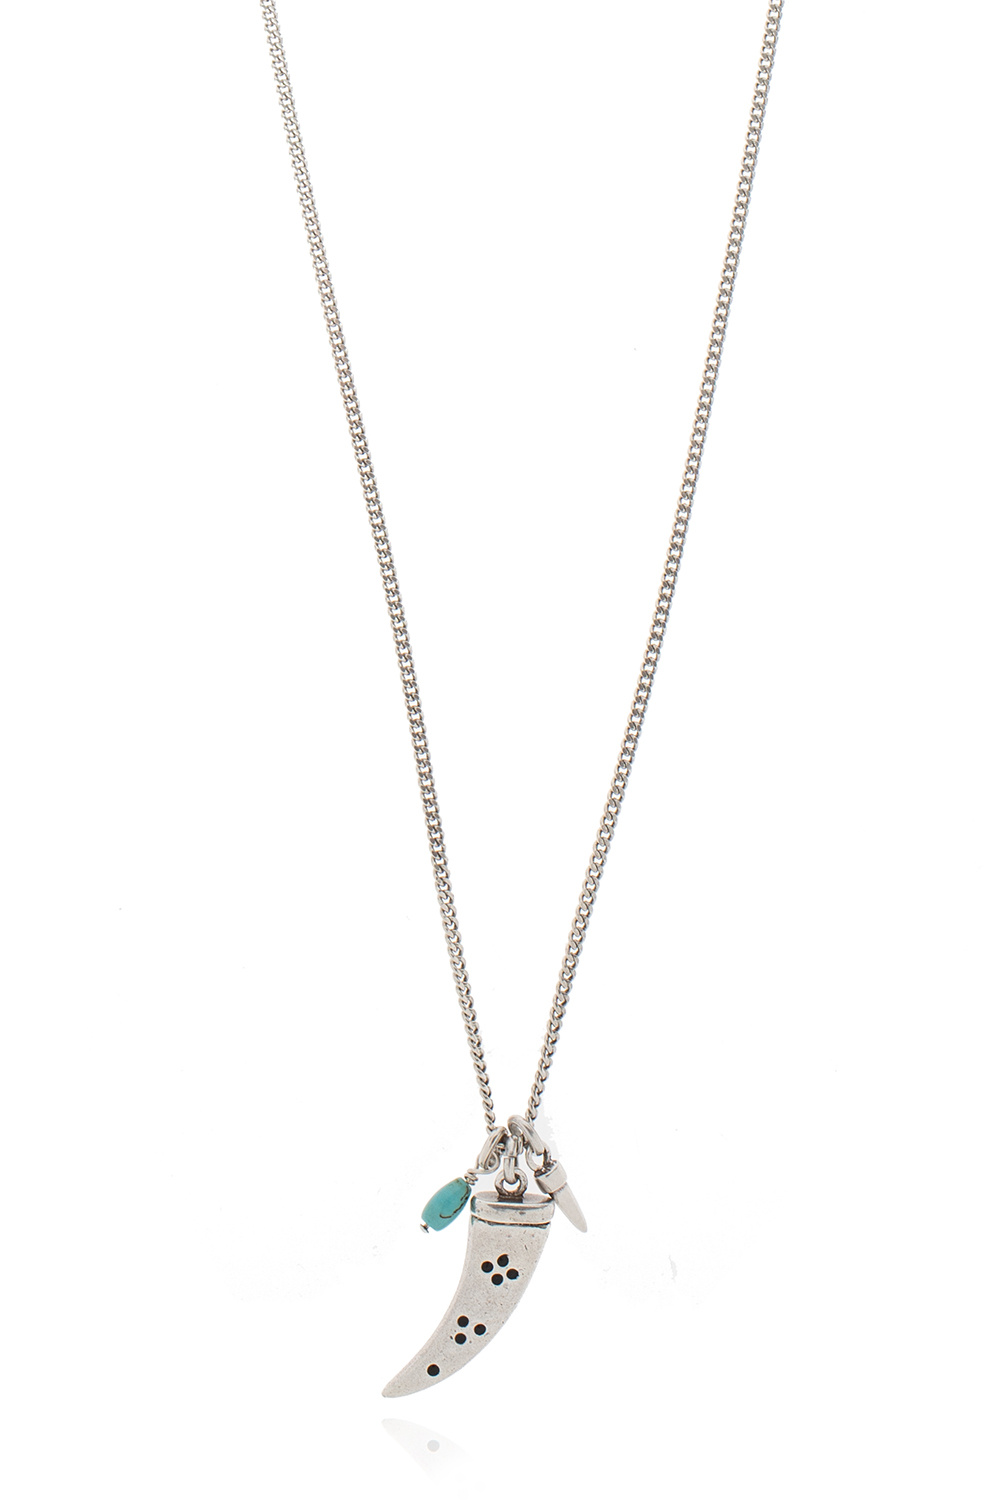 Isabel Marant Necklace with pendant